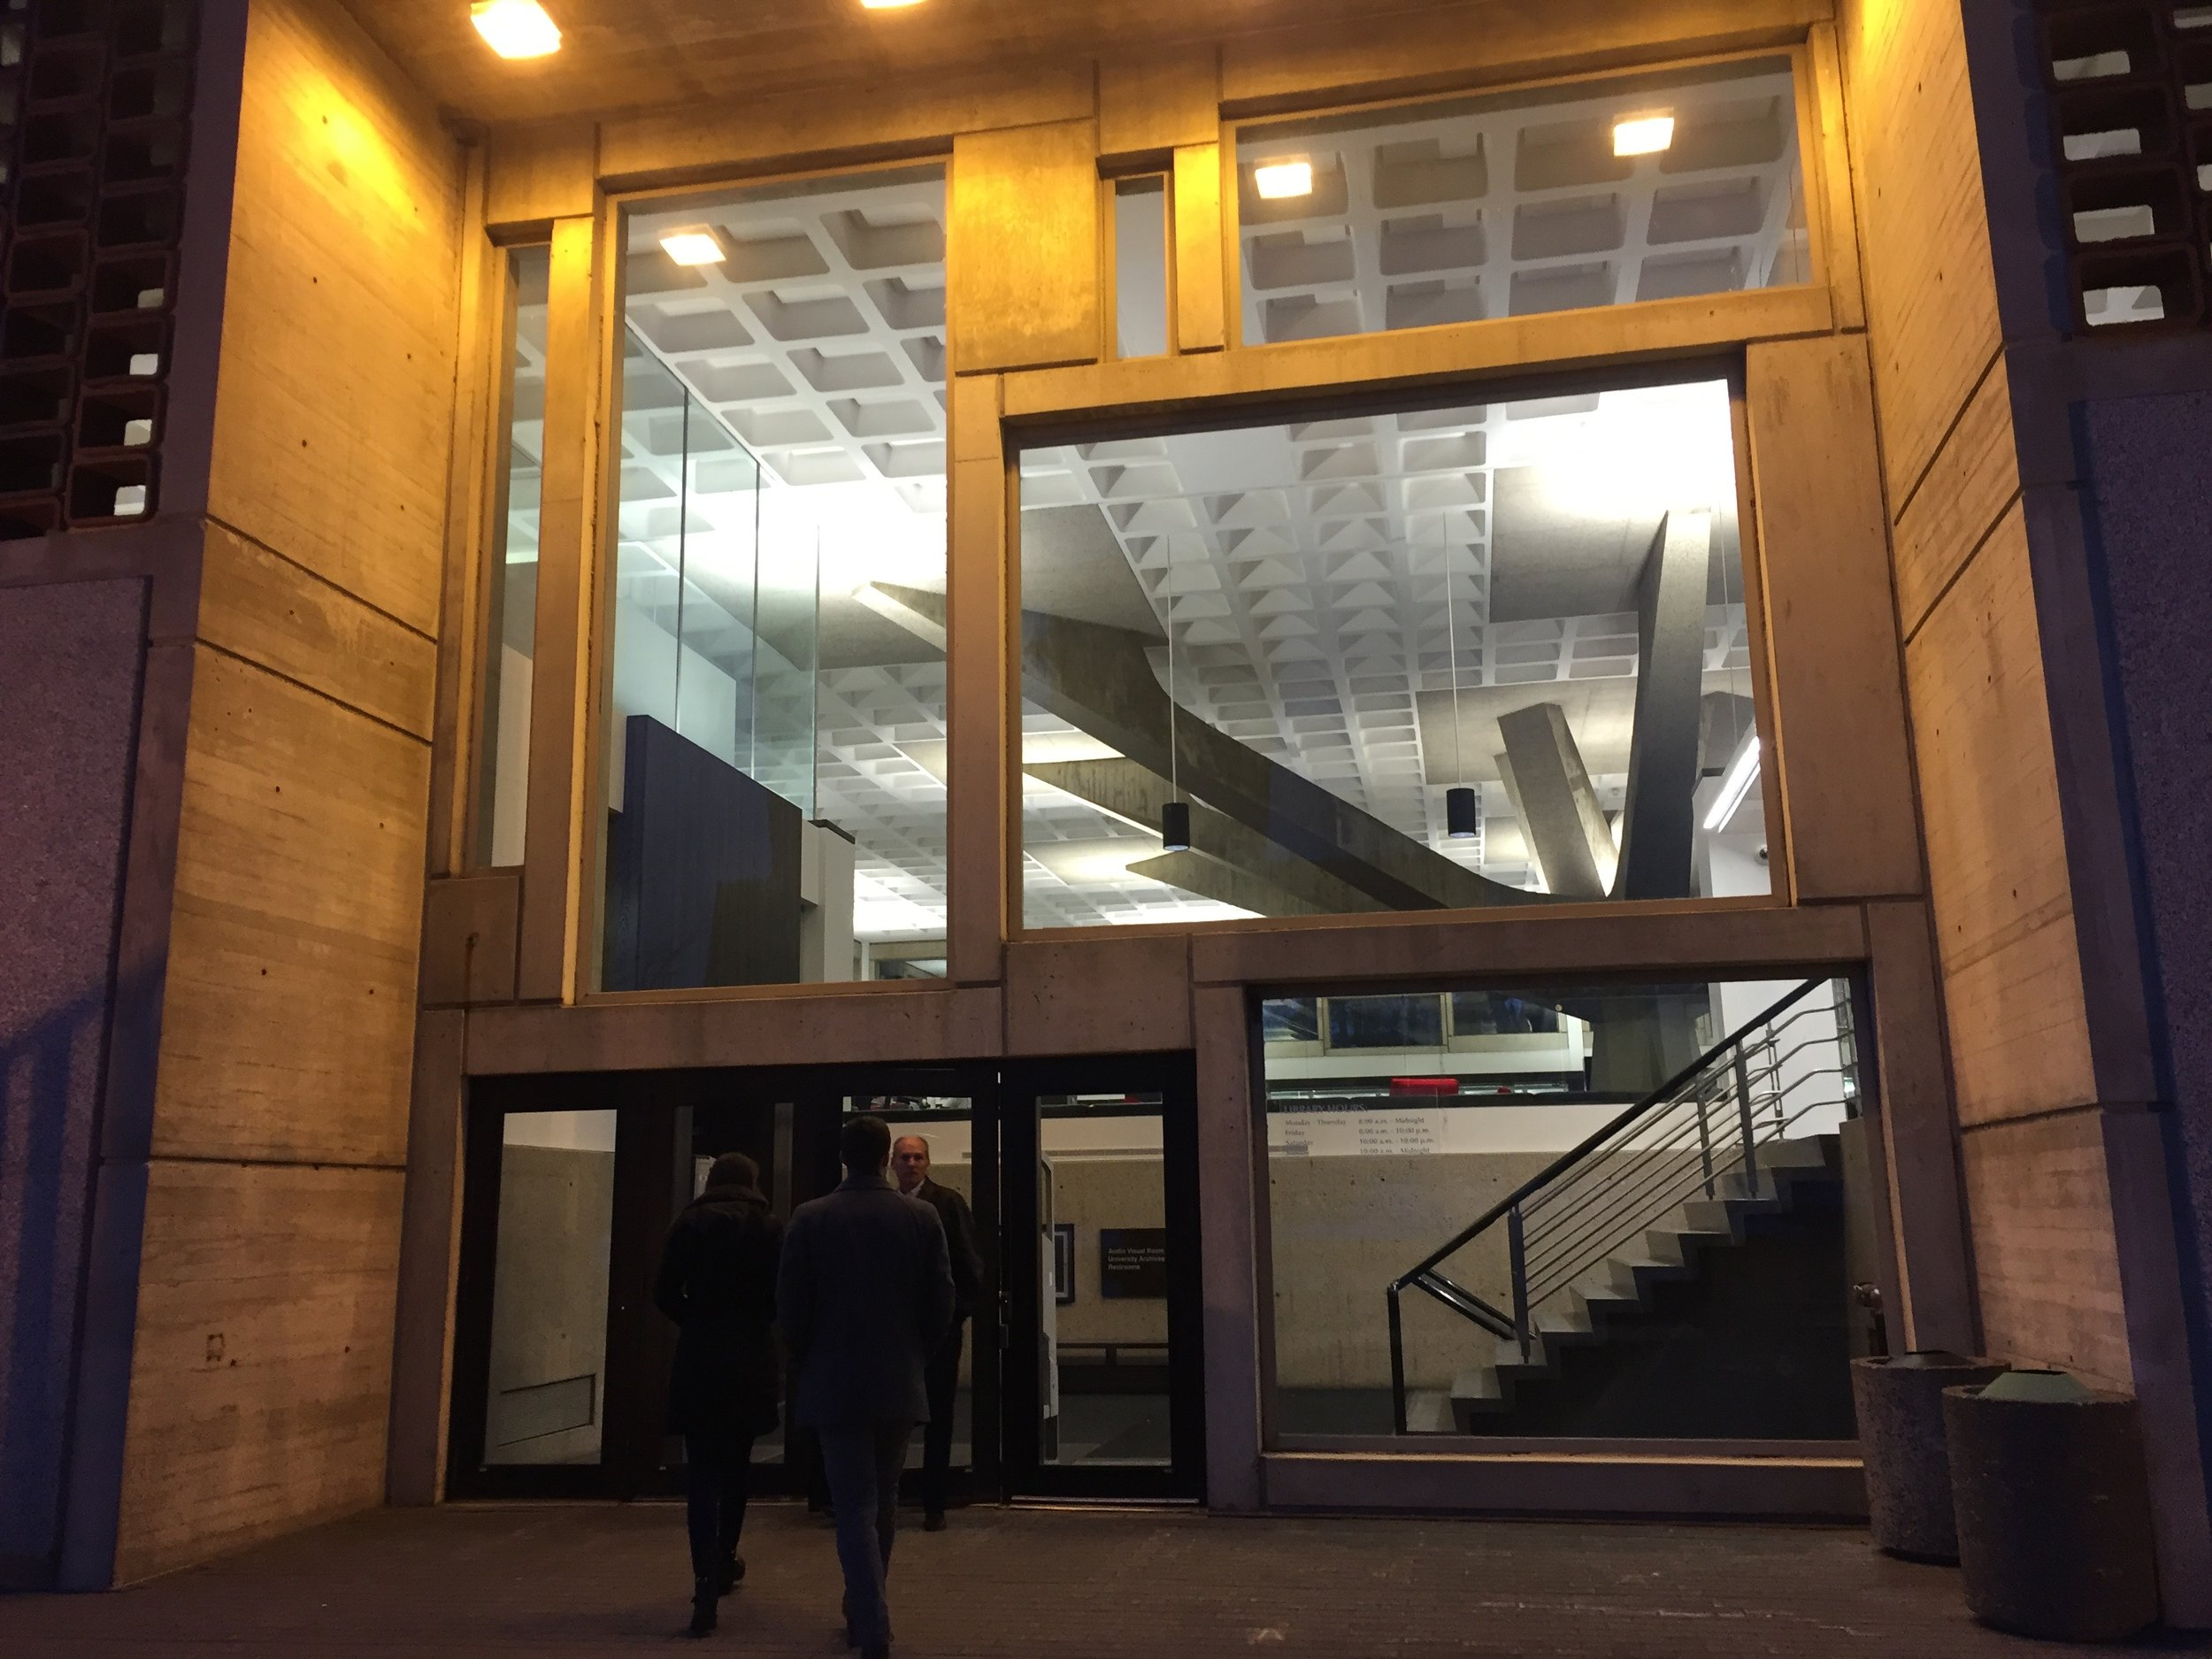 The new entrance to the Alcuin Library. Check out the fantastic new windows!